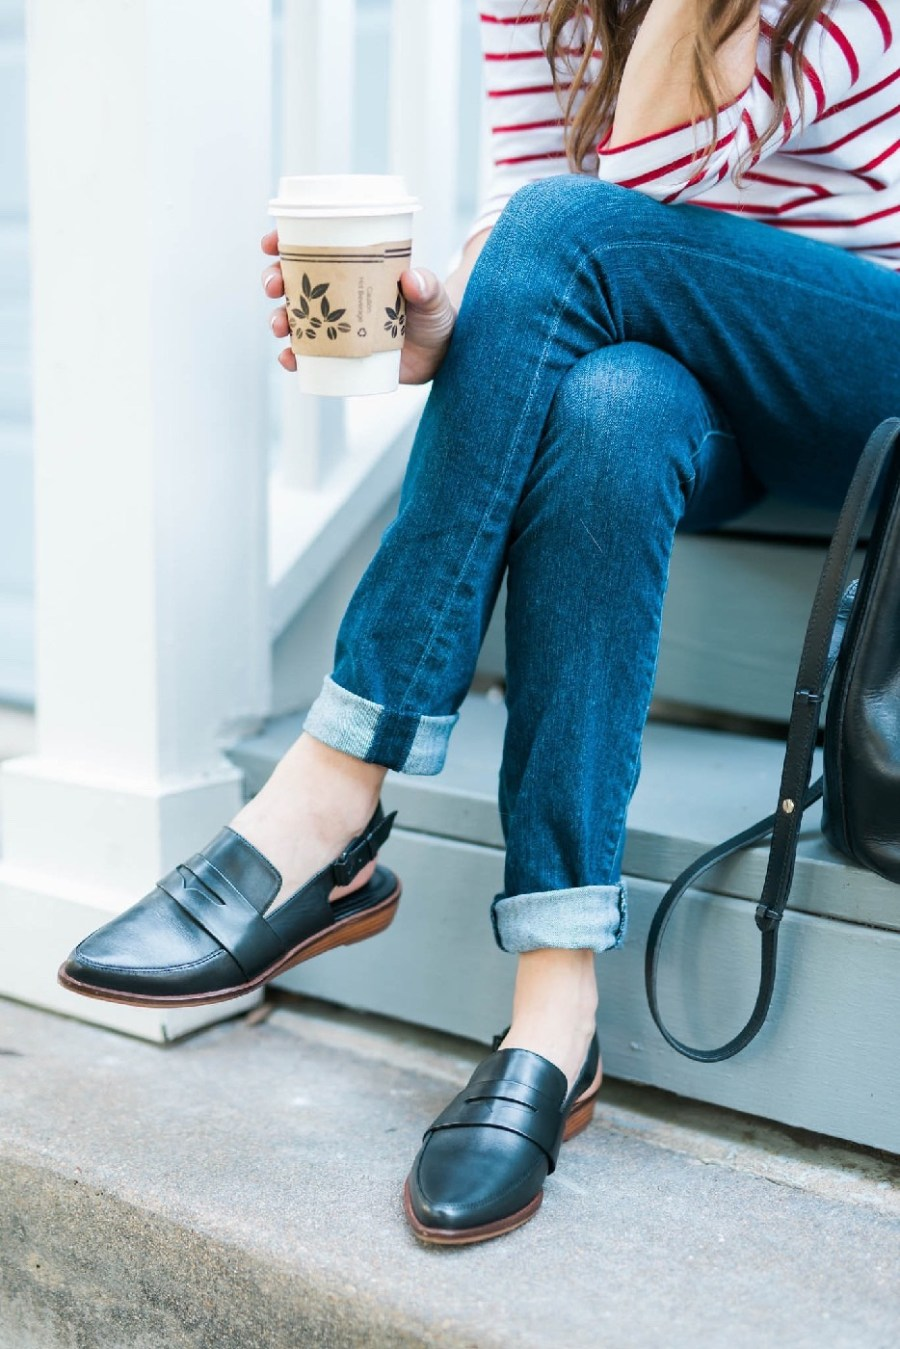 Wearing a pair of Kelsi Brooklyn Dagger black slip on loafers from Anthropologie with cuffed blue jeans.